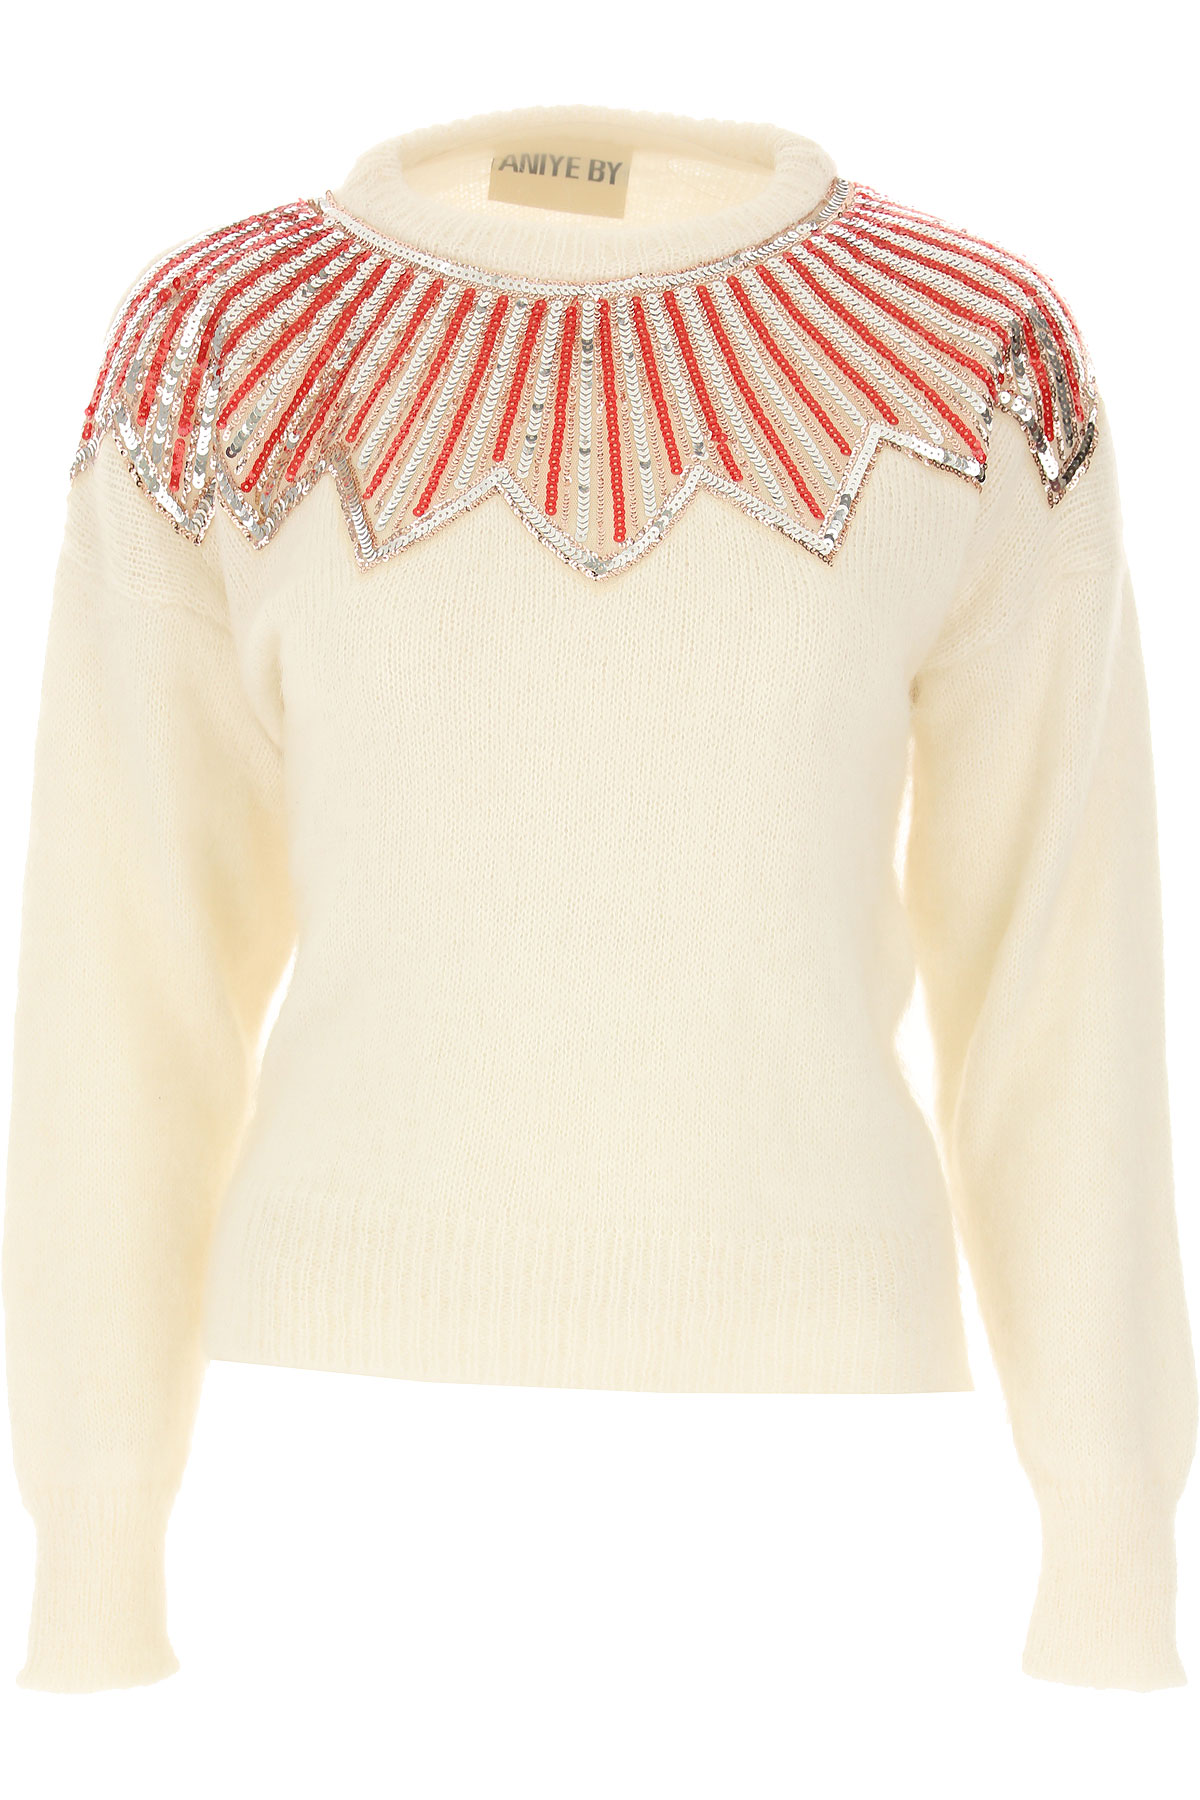 Aniye By Sweater for Women Jumper On Sale, White, Acrylic, 2019, 2 4 6